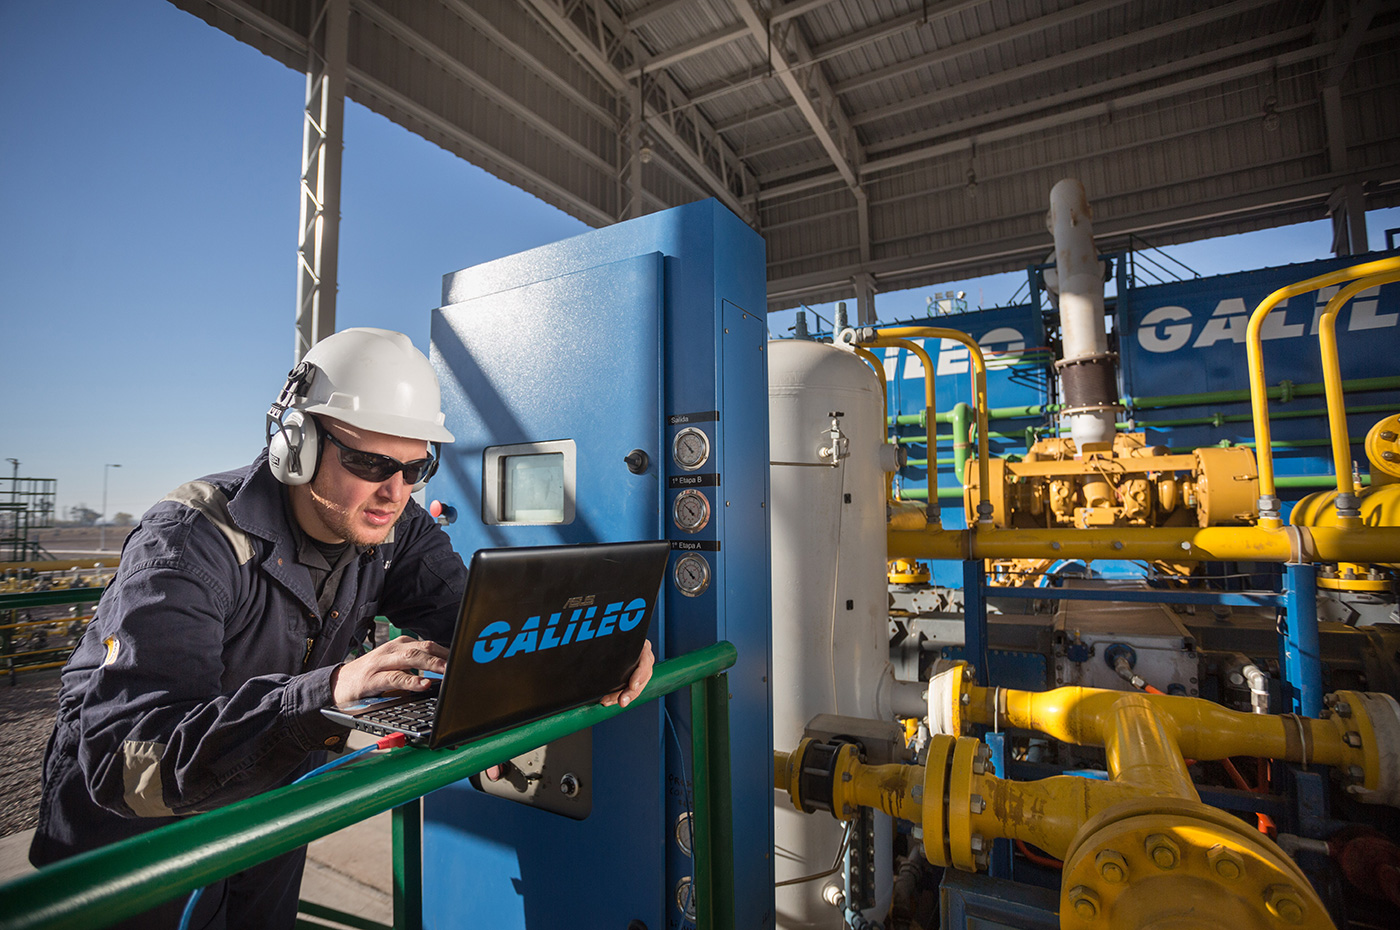 Galileo's Field Services personnel monitoring performance of Microskid Process compressor  packages in a mature well operated by YPF (Yacimientos Petroliferos Fiscales) in Loma de la Lata, Argentina.